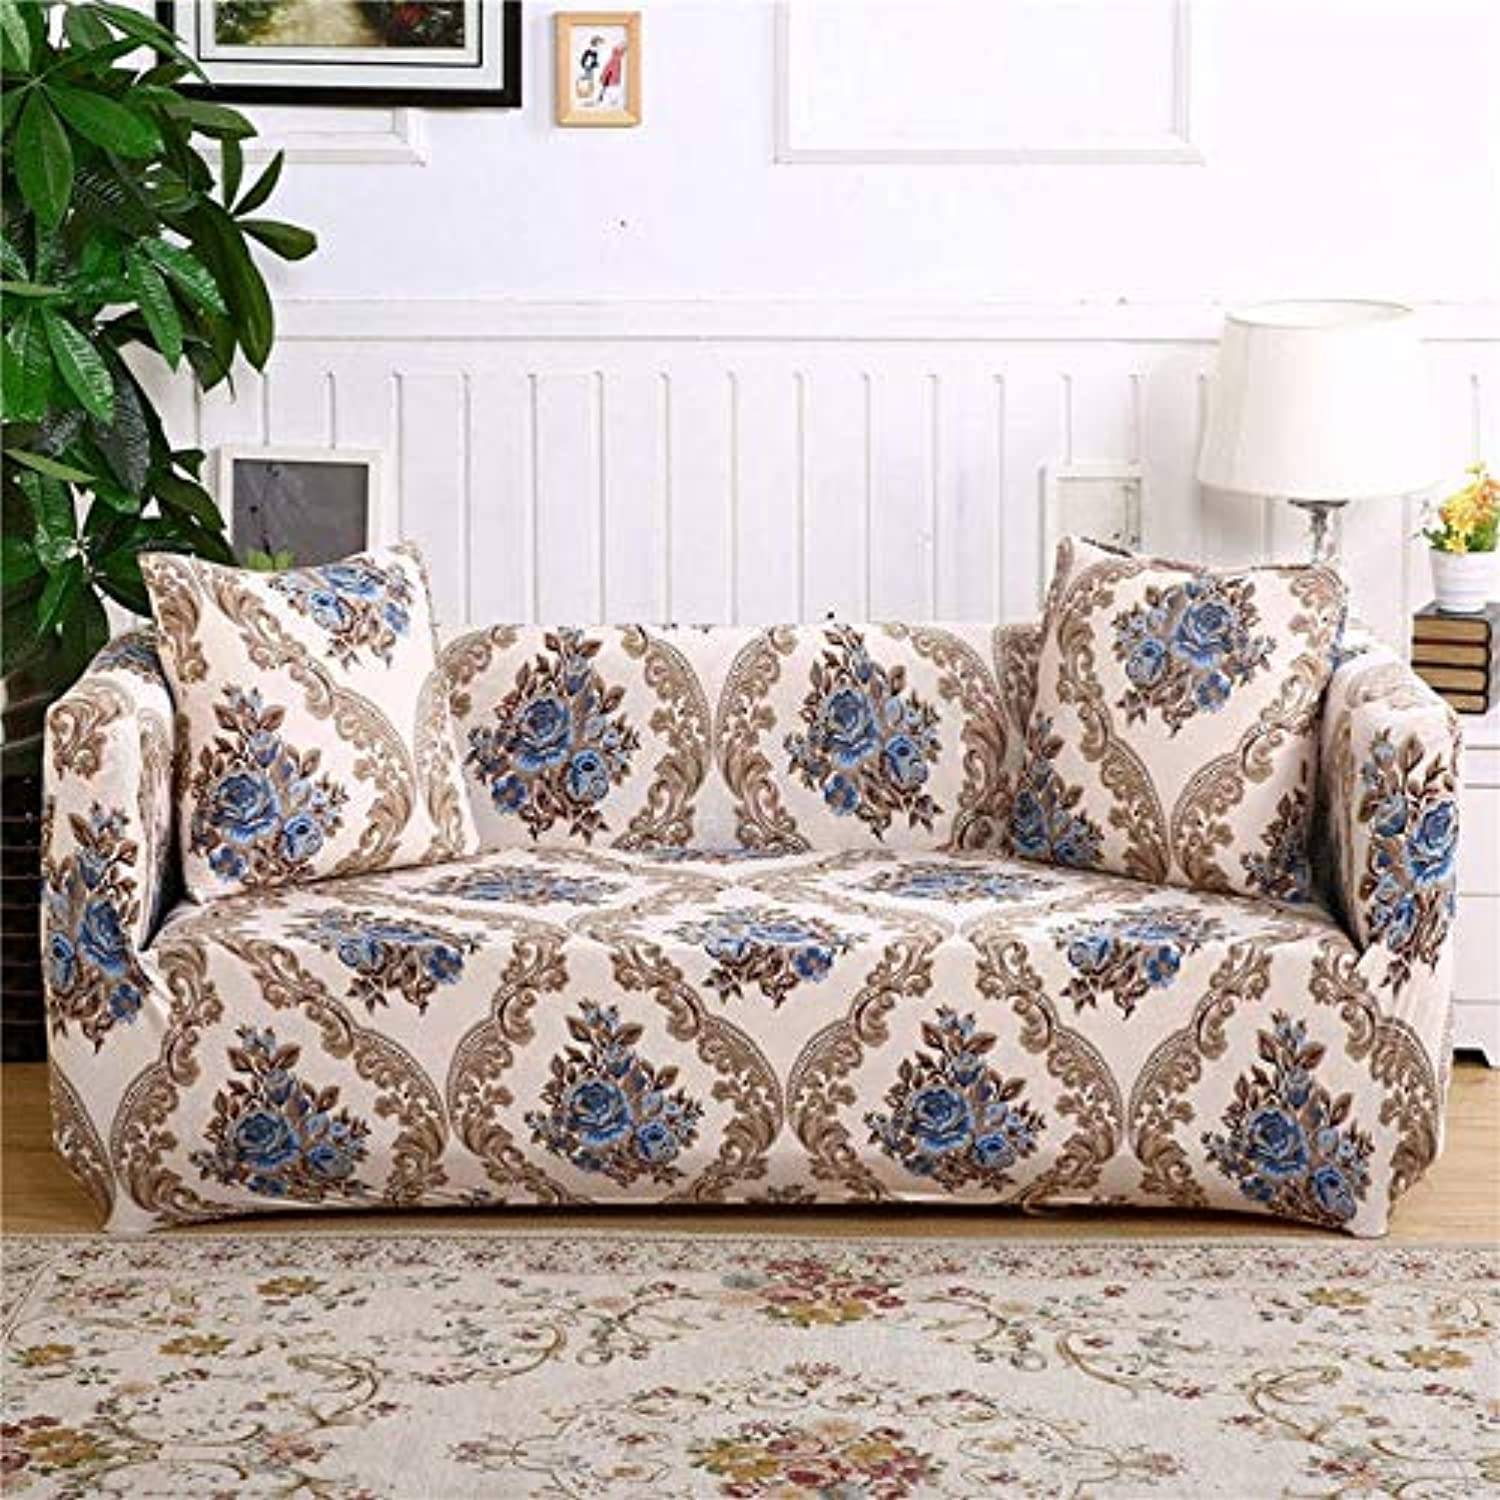 Floral Printing Stretch Elastic Sofa Cover Cotton Sofa Towel Slip-Resistant Sofa Covers for Living Room   colour21, 2-Seater 145-185cm